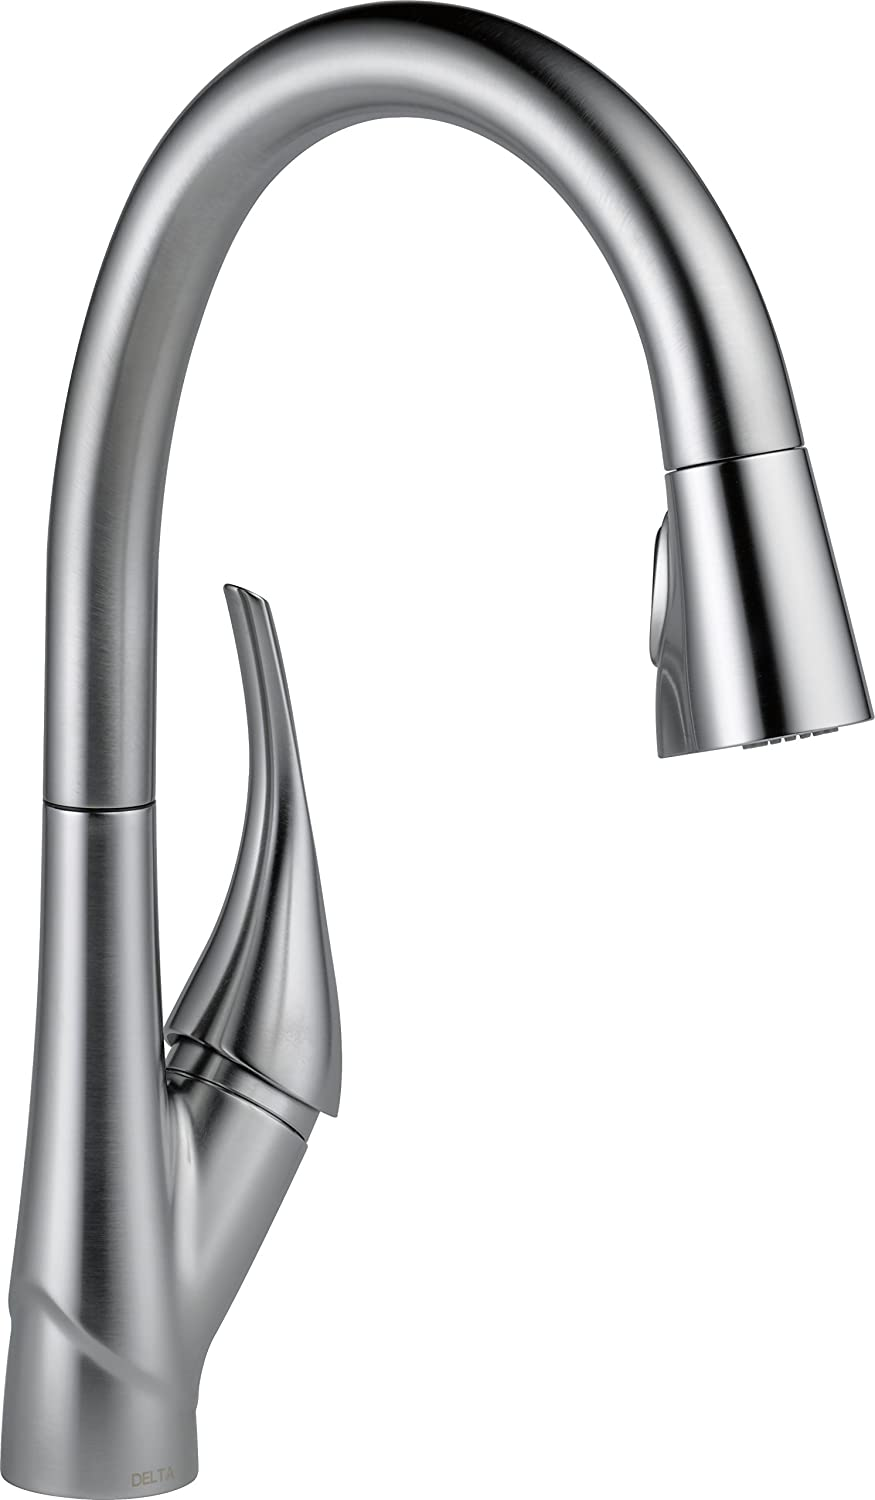 Delta Faucet Esque Single-Handle Kitchen Sink Faucet with Pull Down Sprayer, ShieldSpray Technology and Magnetic Docking Spray Head, Arctic Stainless 9181-AR-DST